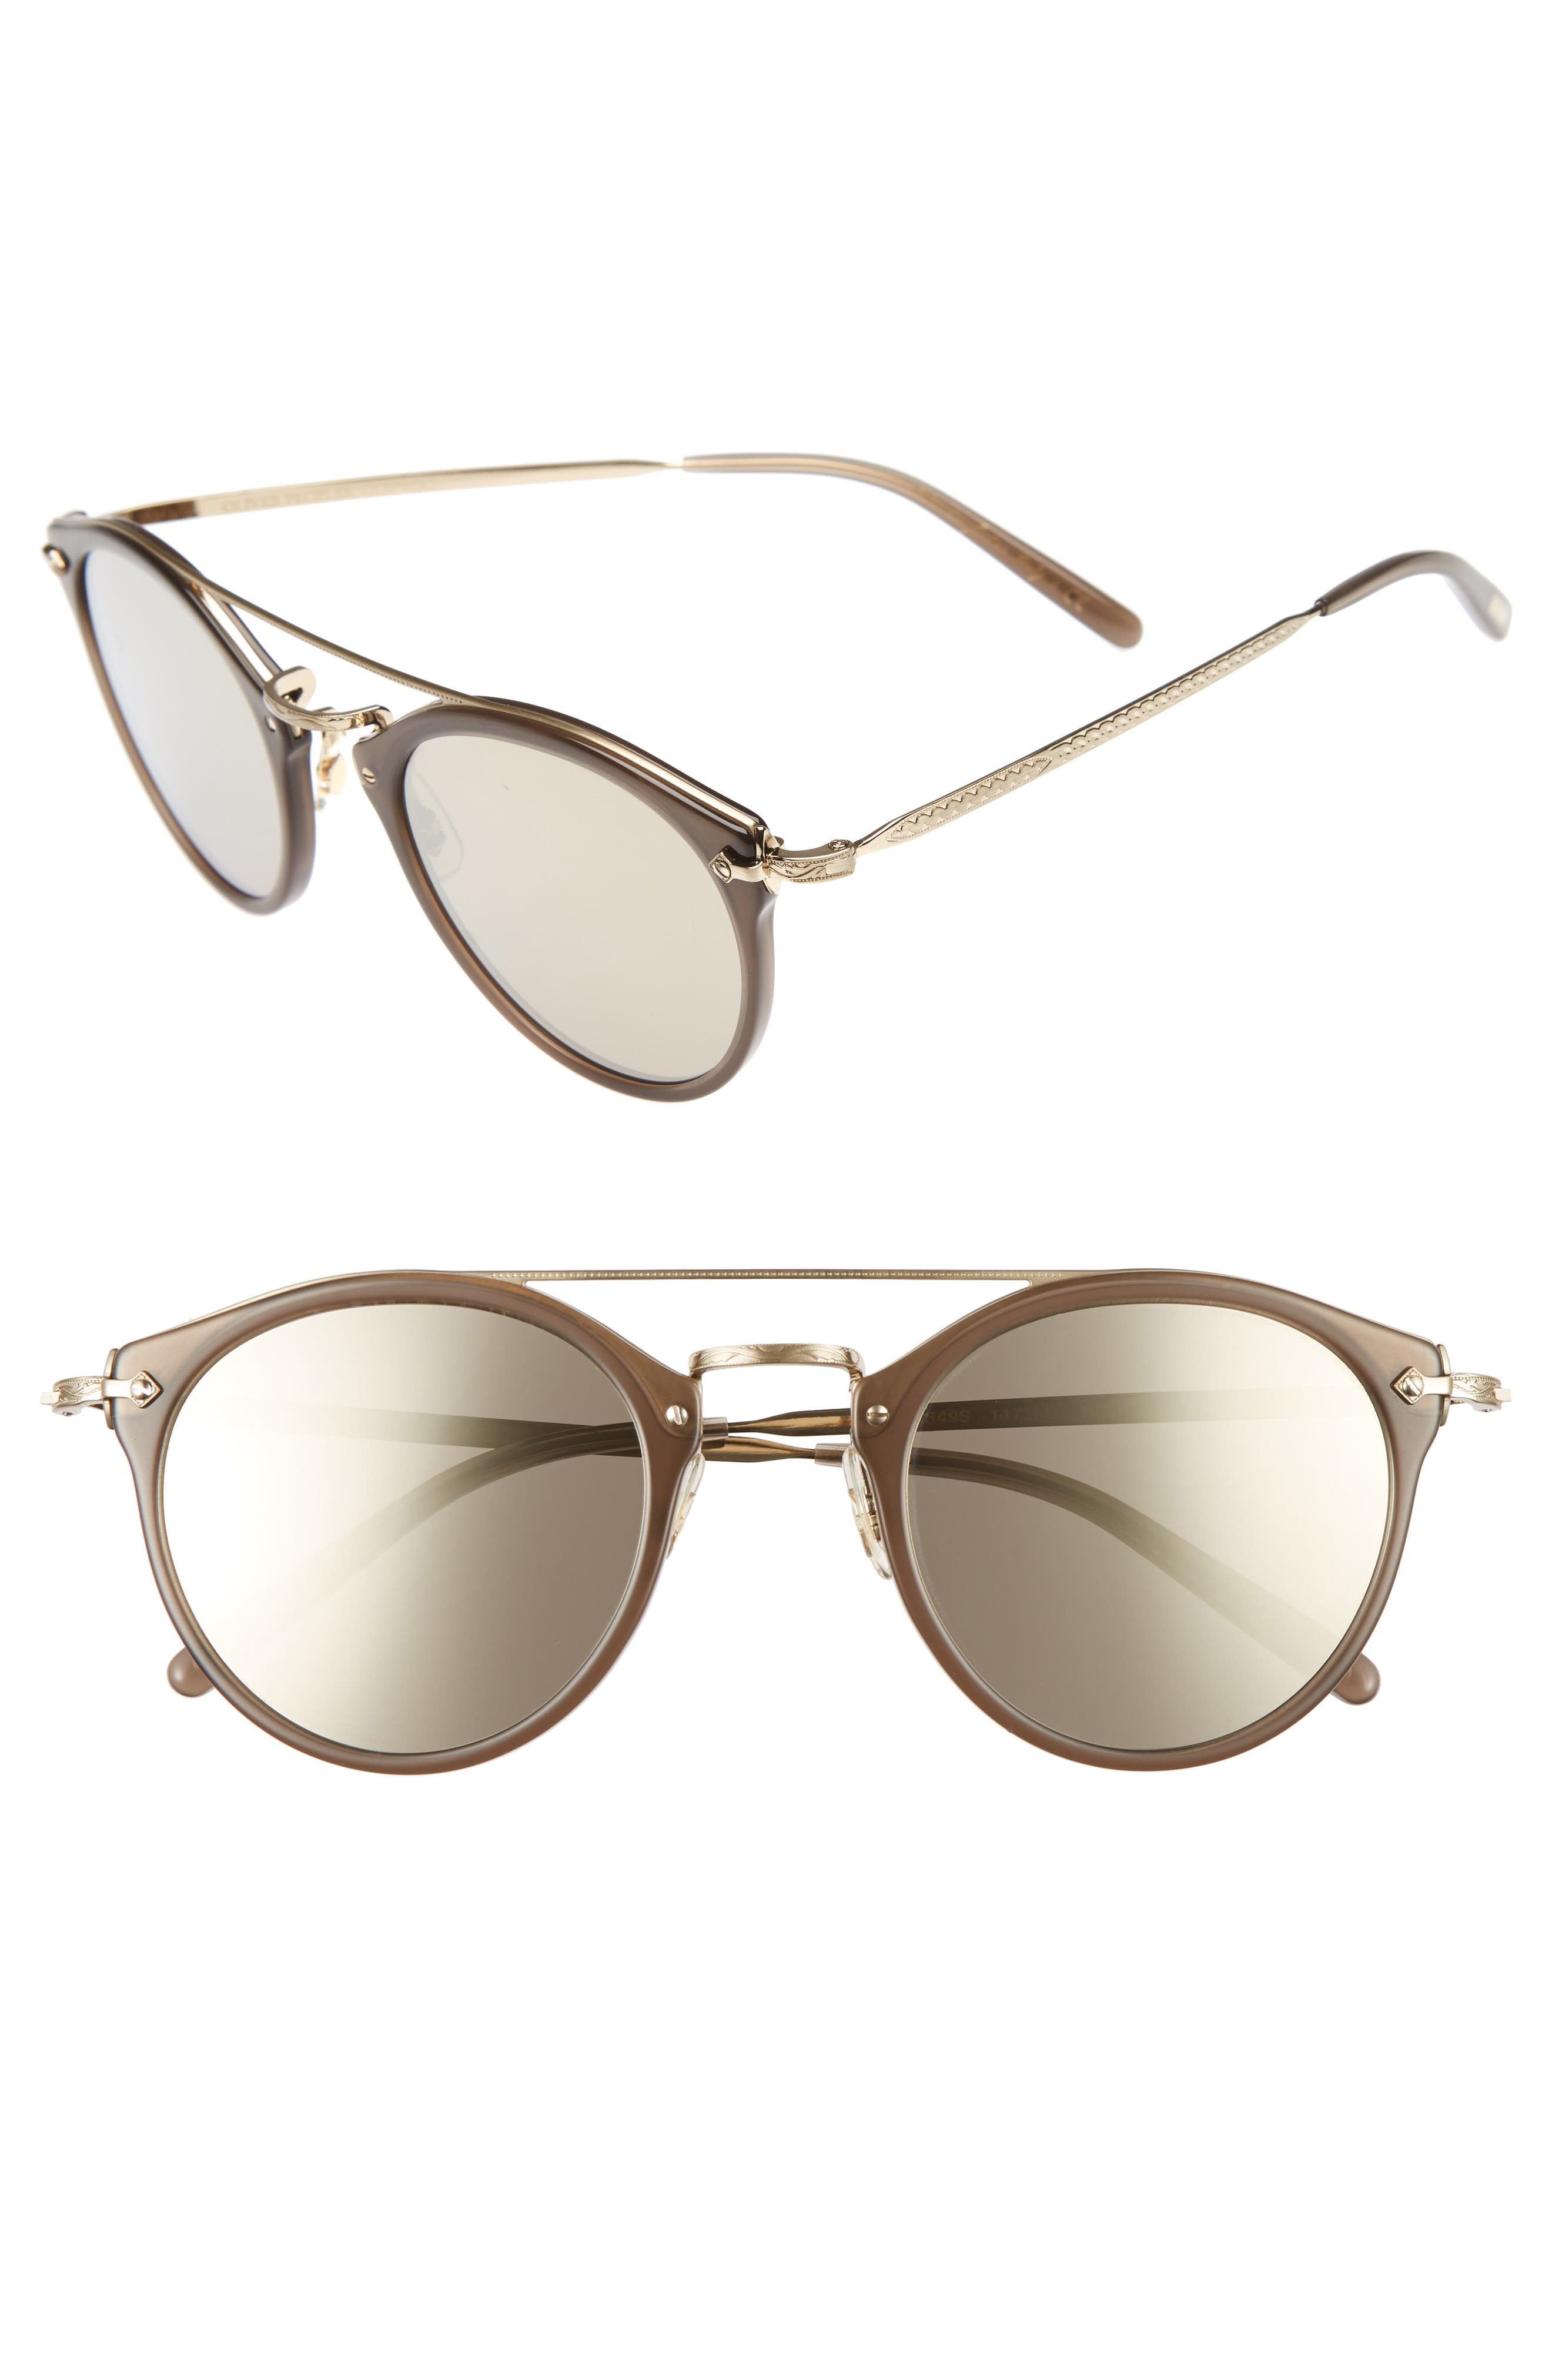 Main Image - Oliver Peoples Remick 50mm Brow Bar Sunglasses